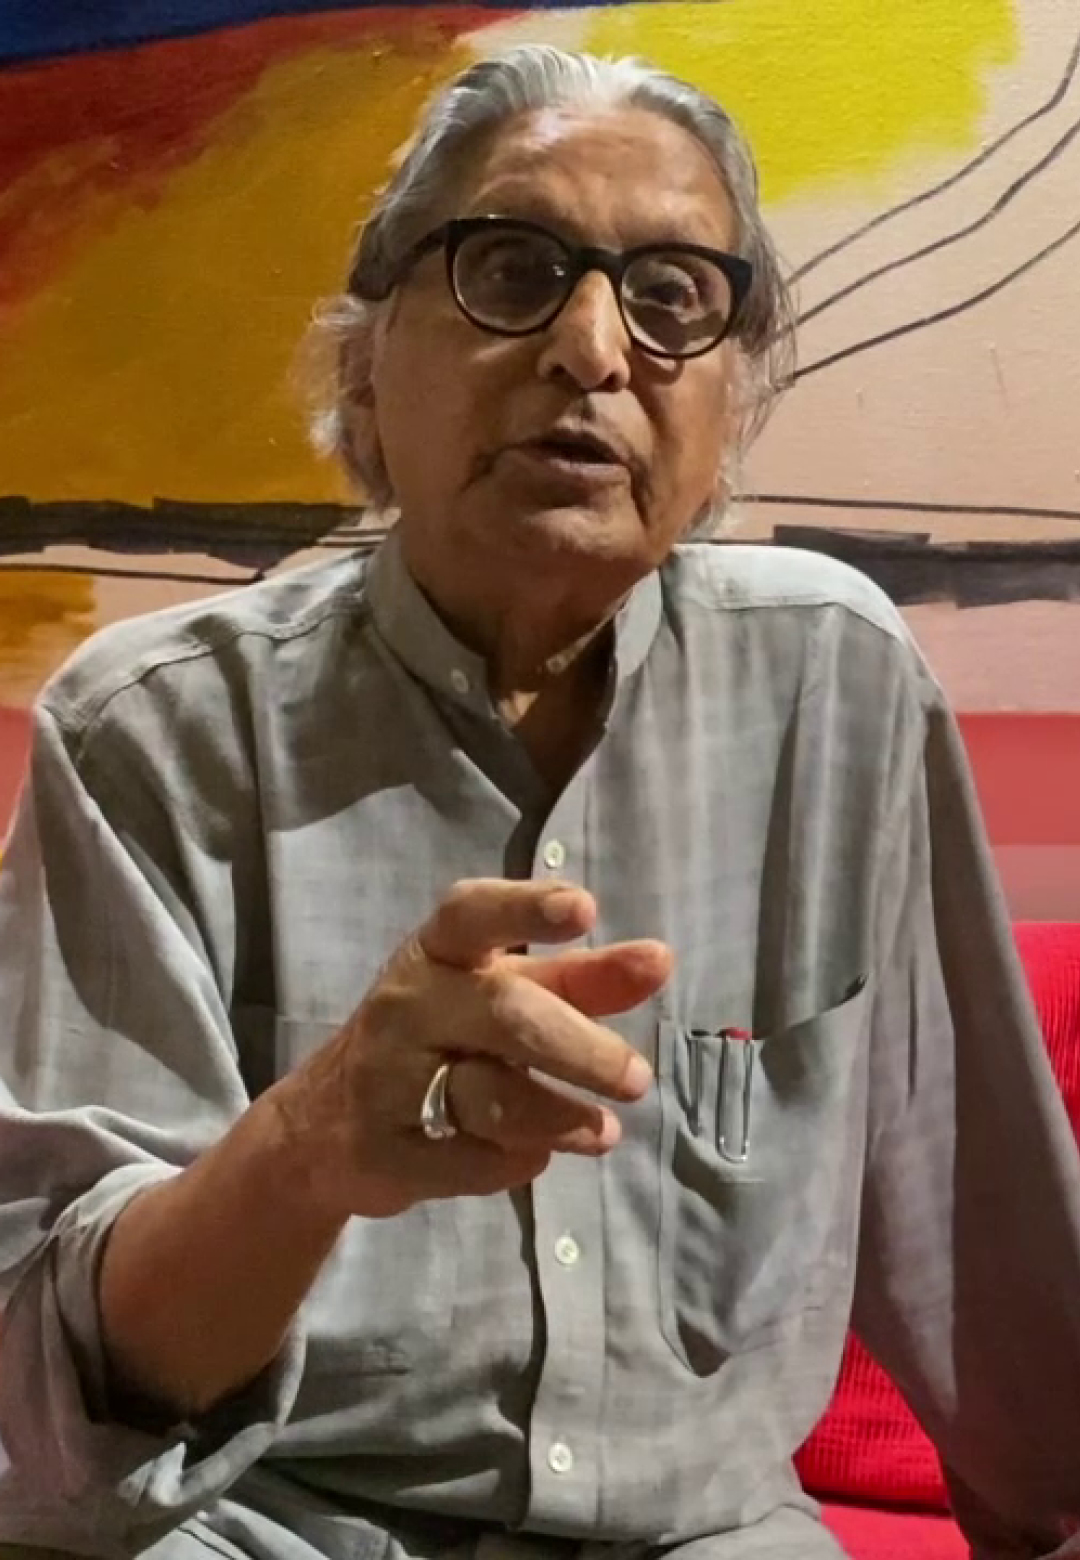 As STIR celebrates Balkrishna Vithaldas Doshi on his 93rd birthday, the Pritzker laureate shares anecdotes on the role architecture plays in the time-space paradigm | BV Doshi | STIRworld